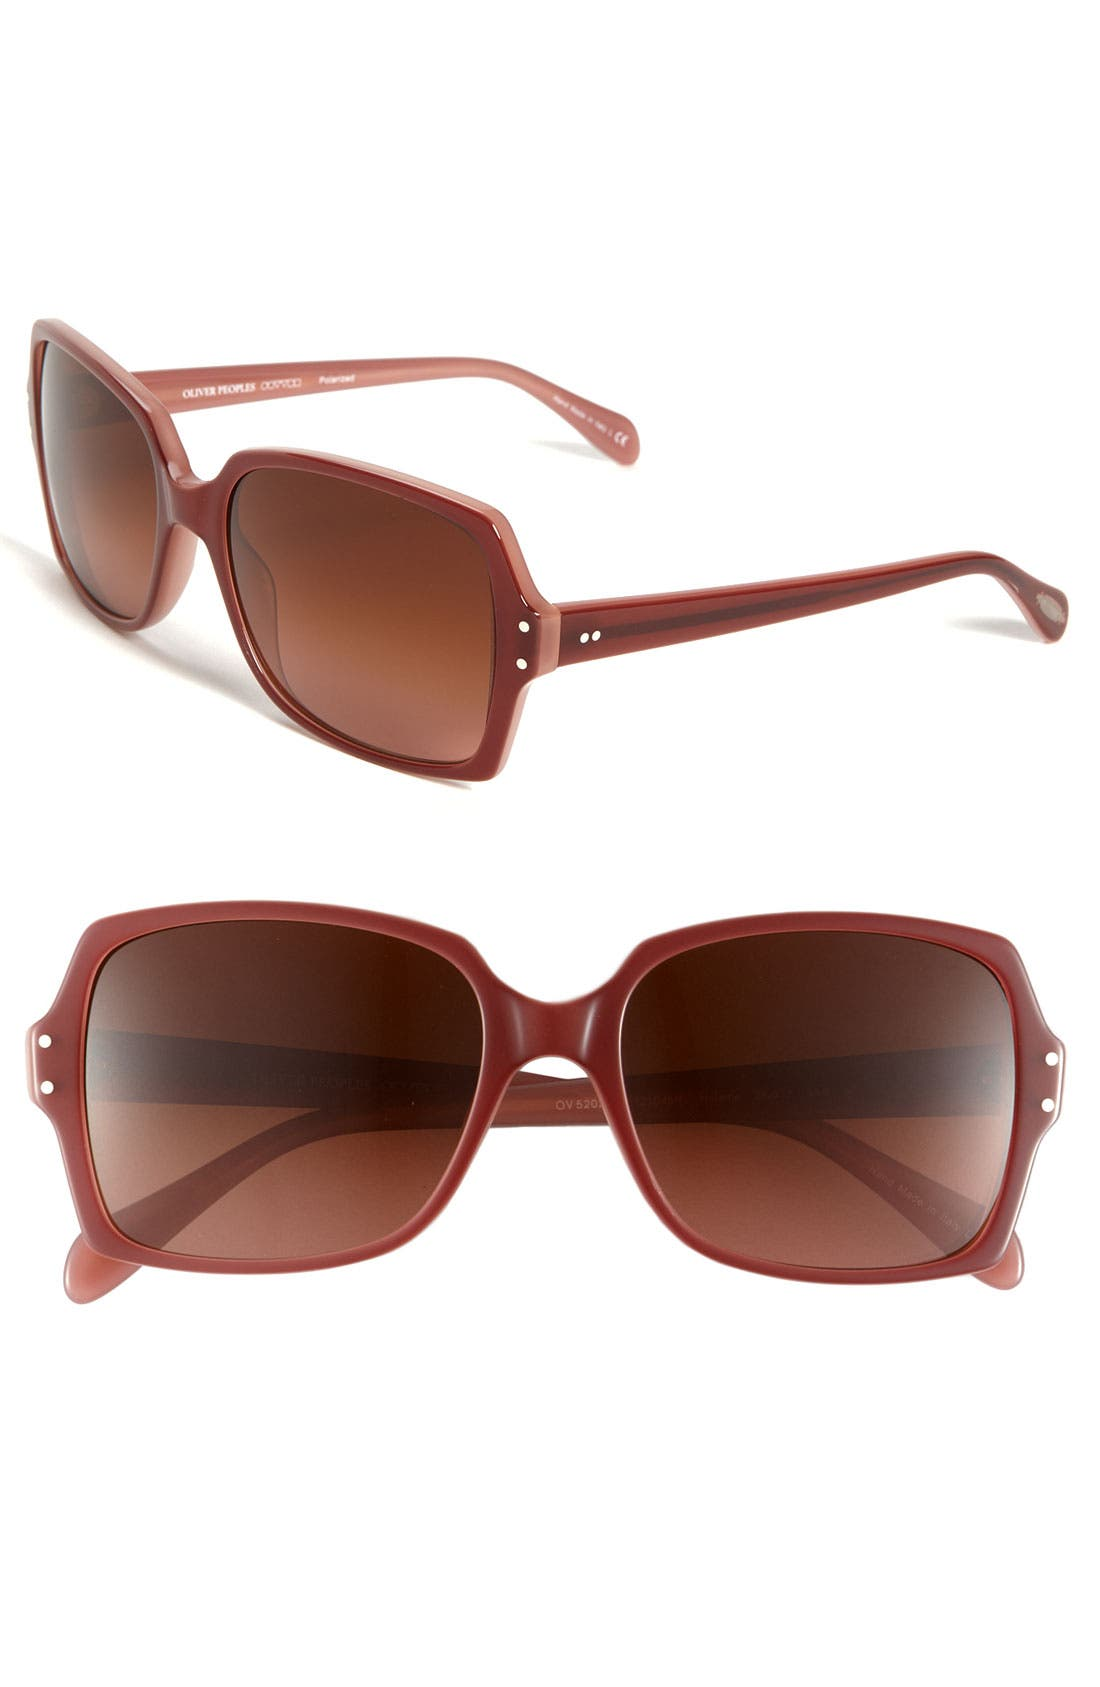 Alternate Image 1 Selected - Oliver Peoples 'Helaine' 56mm Sunglasses